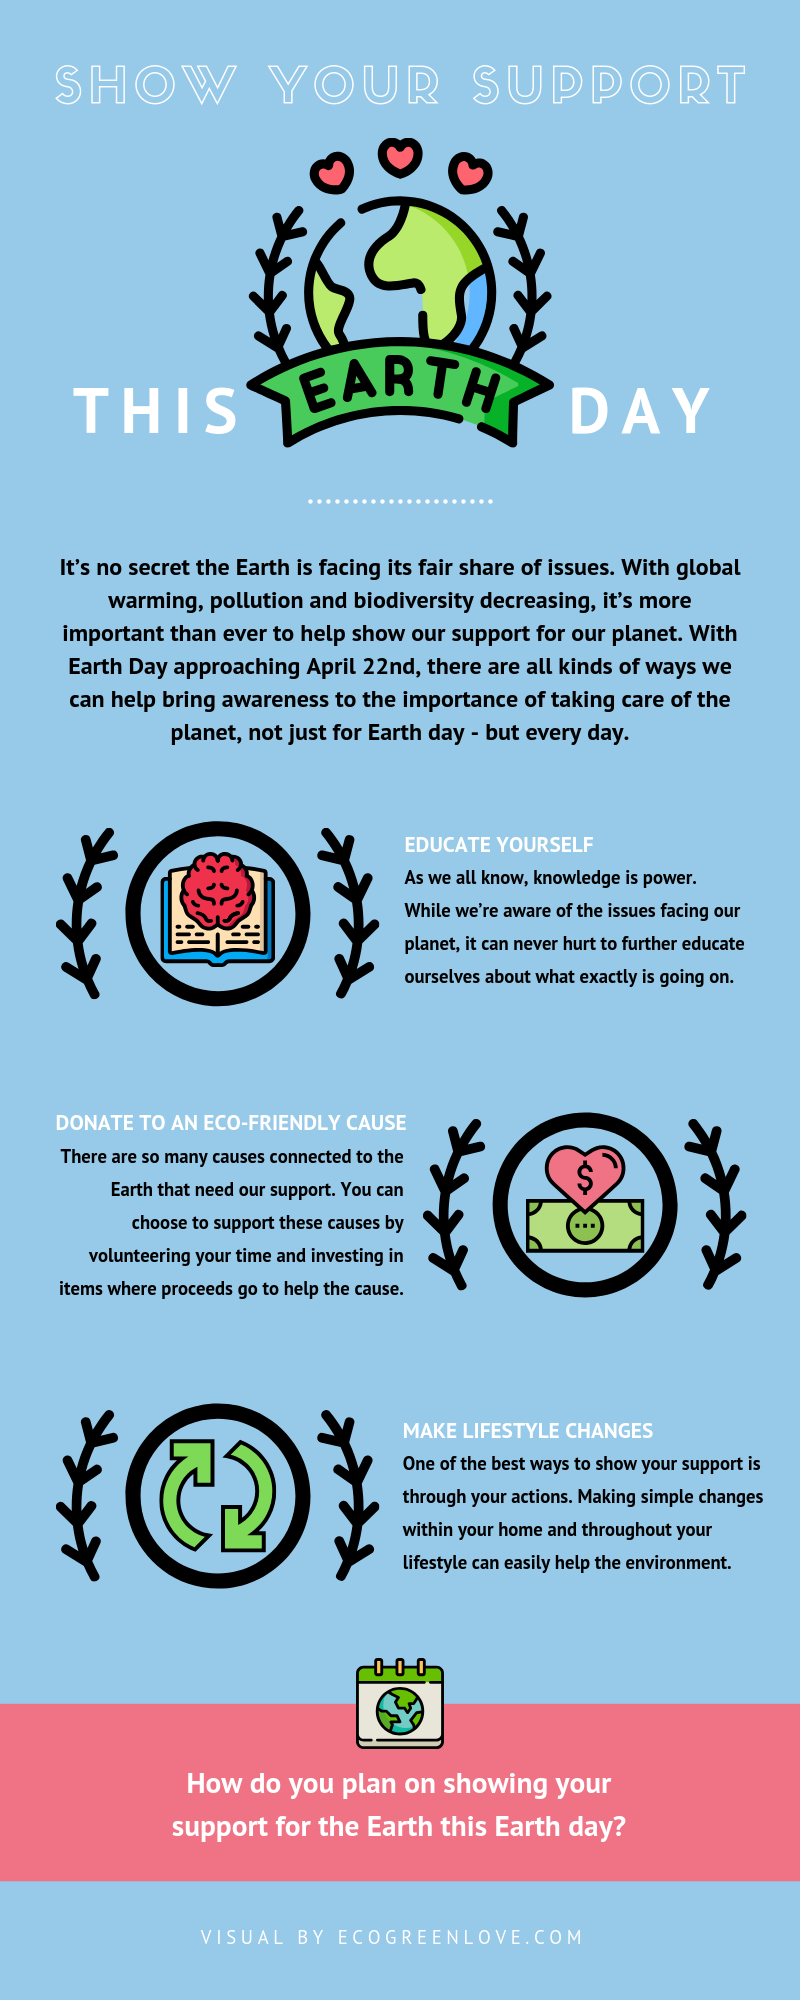 How to Show your Support for the earth this Earth Day [Infographic] | ecogreenlove